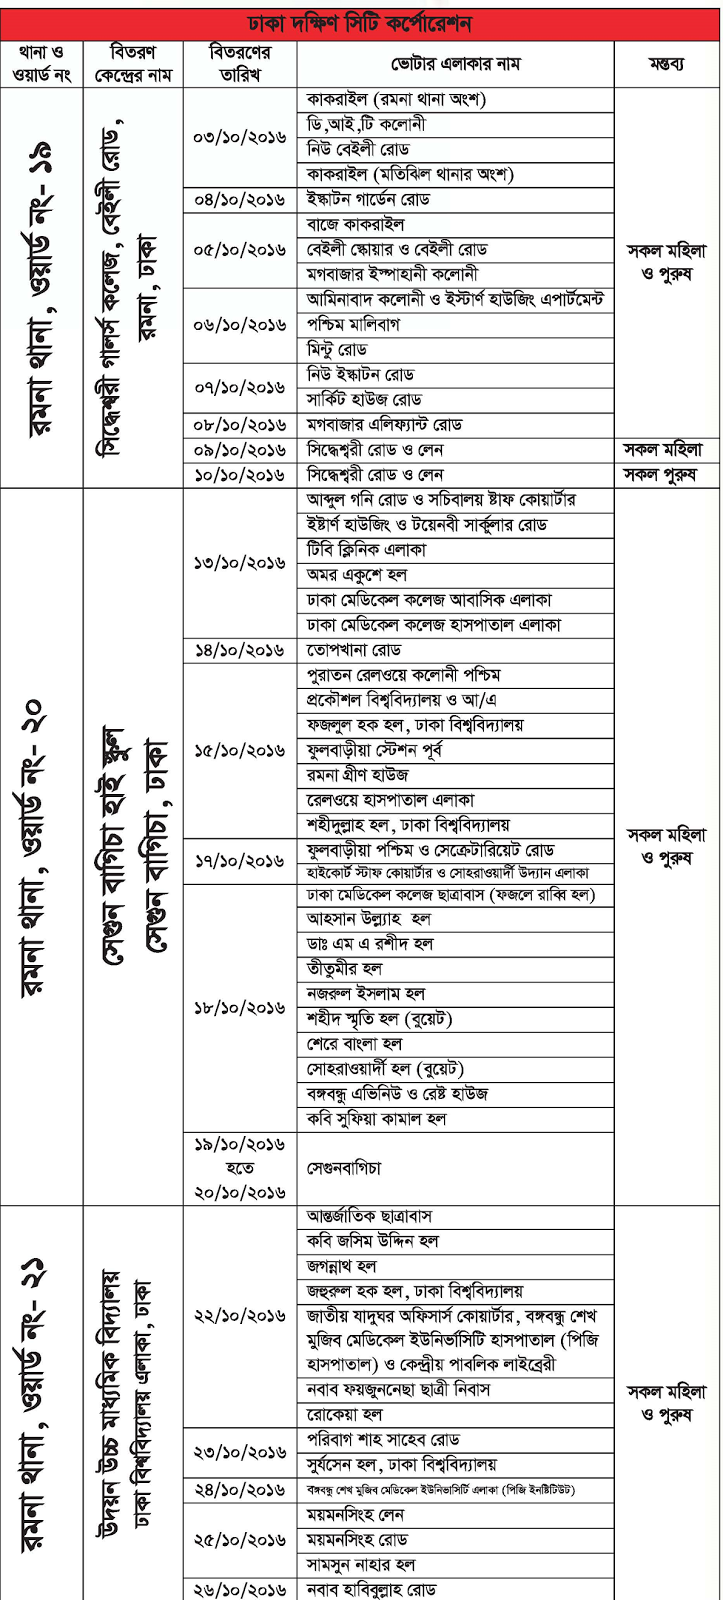 Dhaka-South-City-Corporation--Smart-NID-How-To-Collect-Distribution-Schedules-Informations-Bangladesh.png